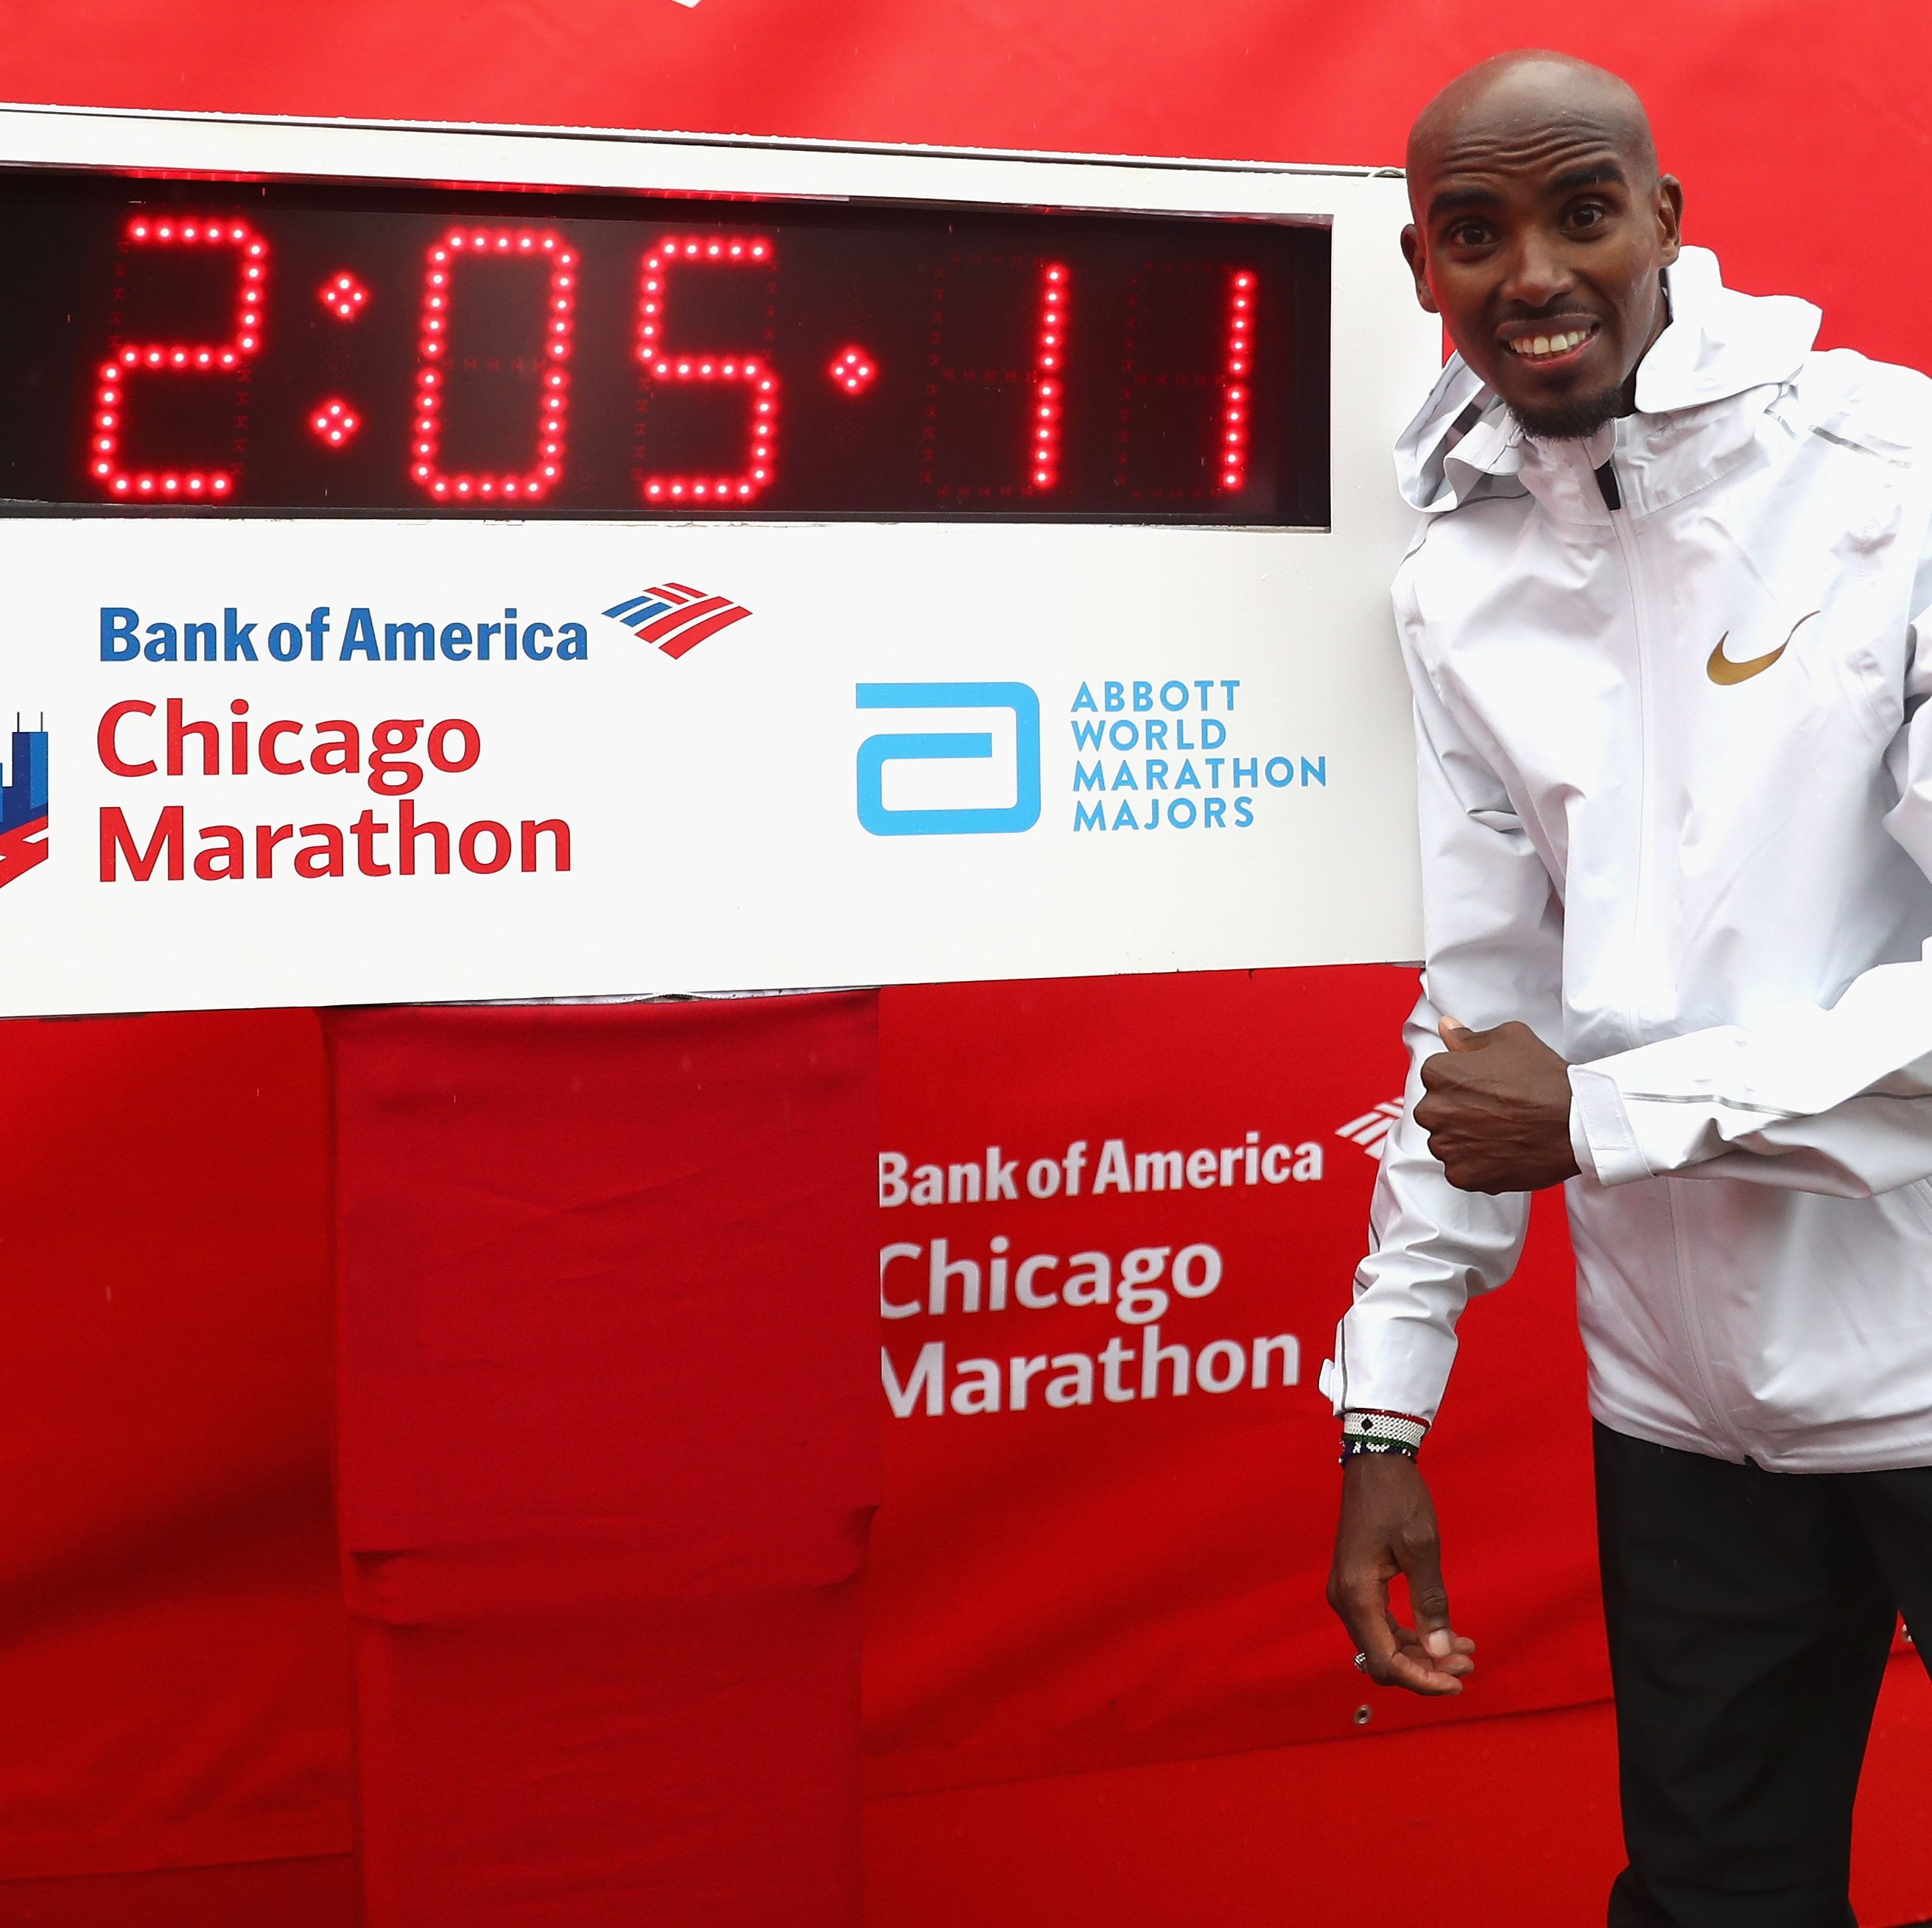 Farah to defend his title at Chicago Marathon